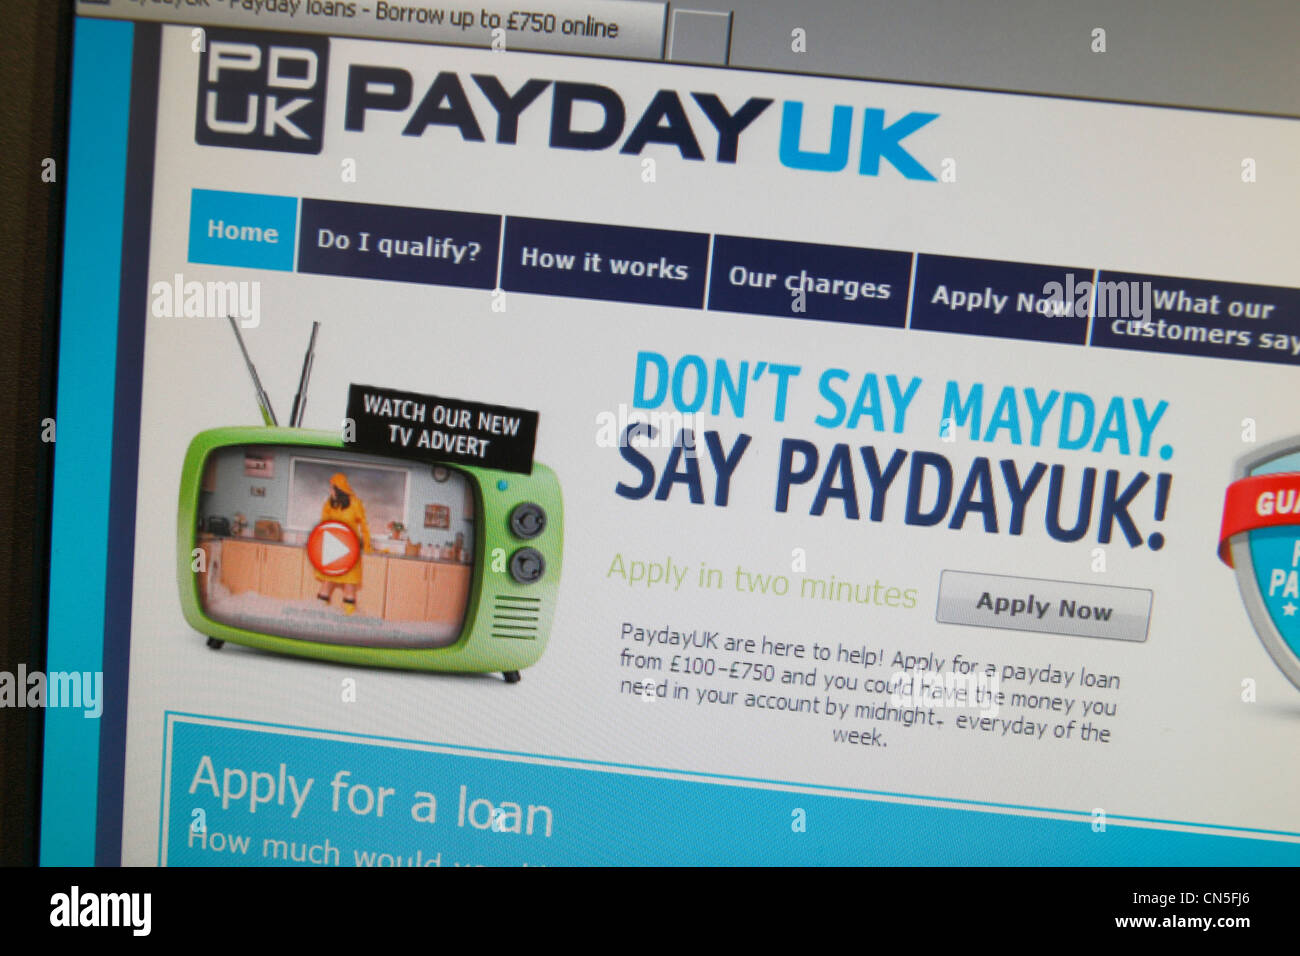 A screenshot of the PayDay UK web site, a payday loan company in the UK. - Stock Image